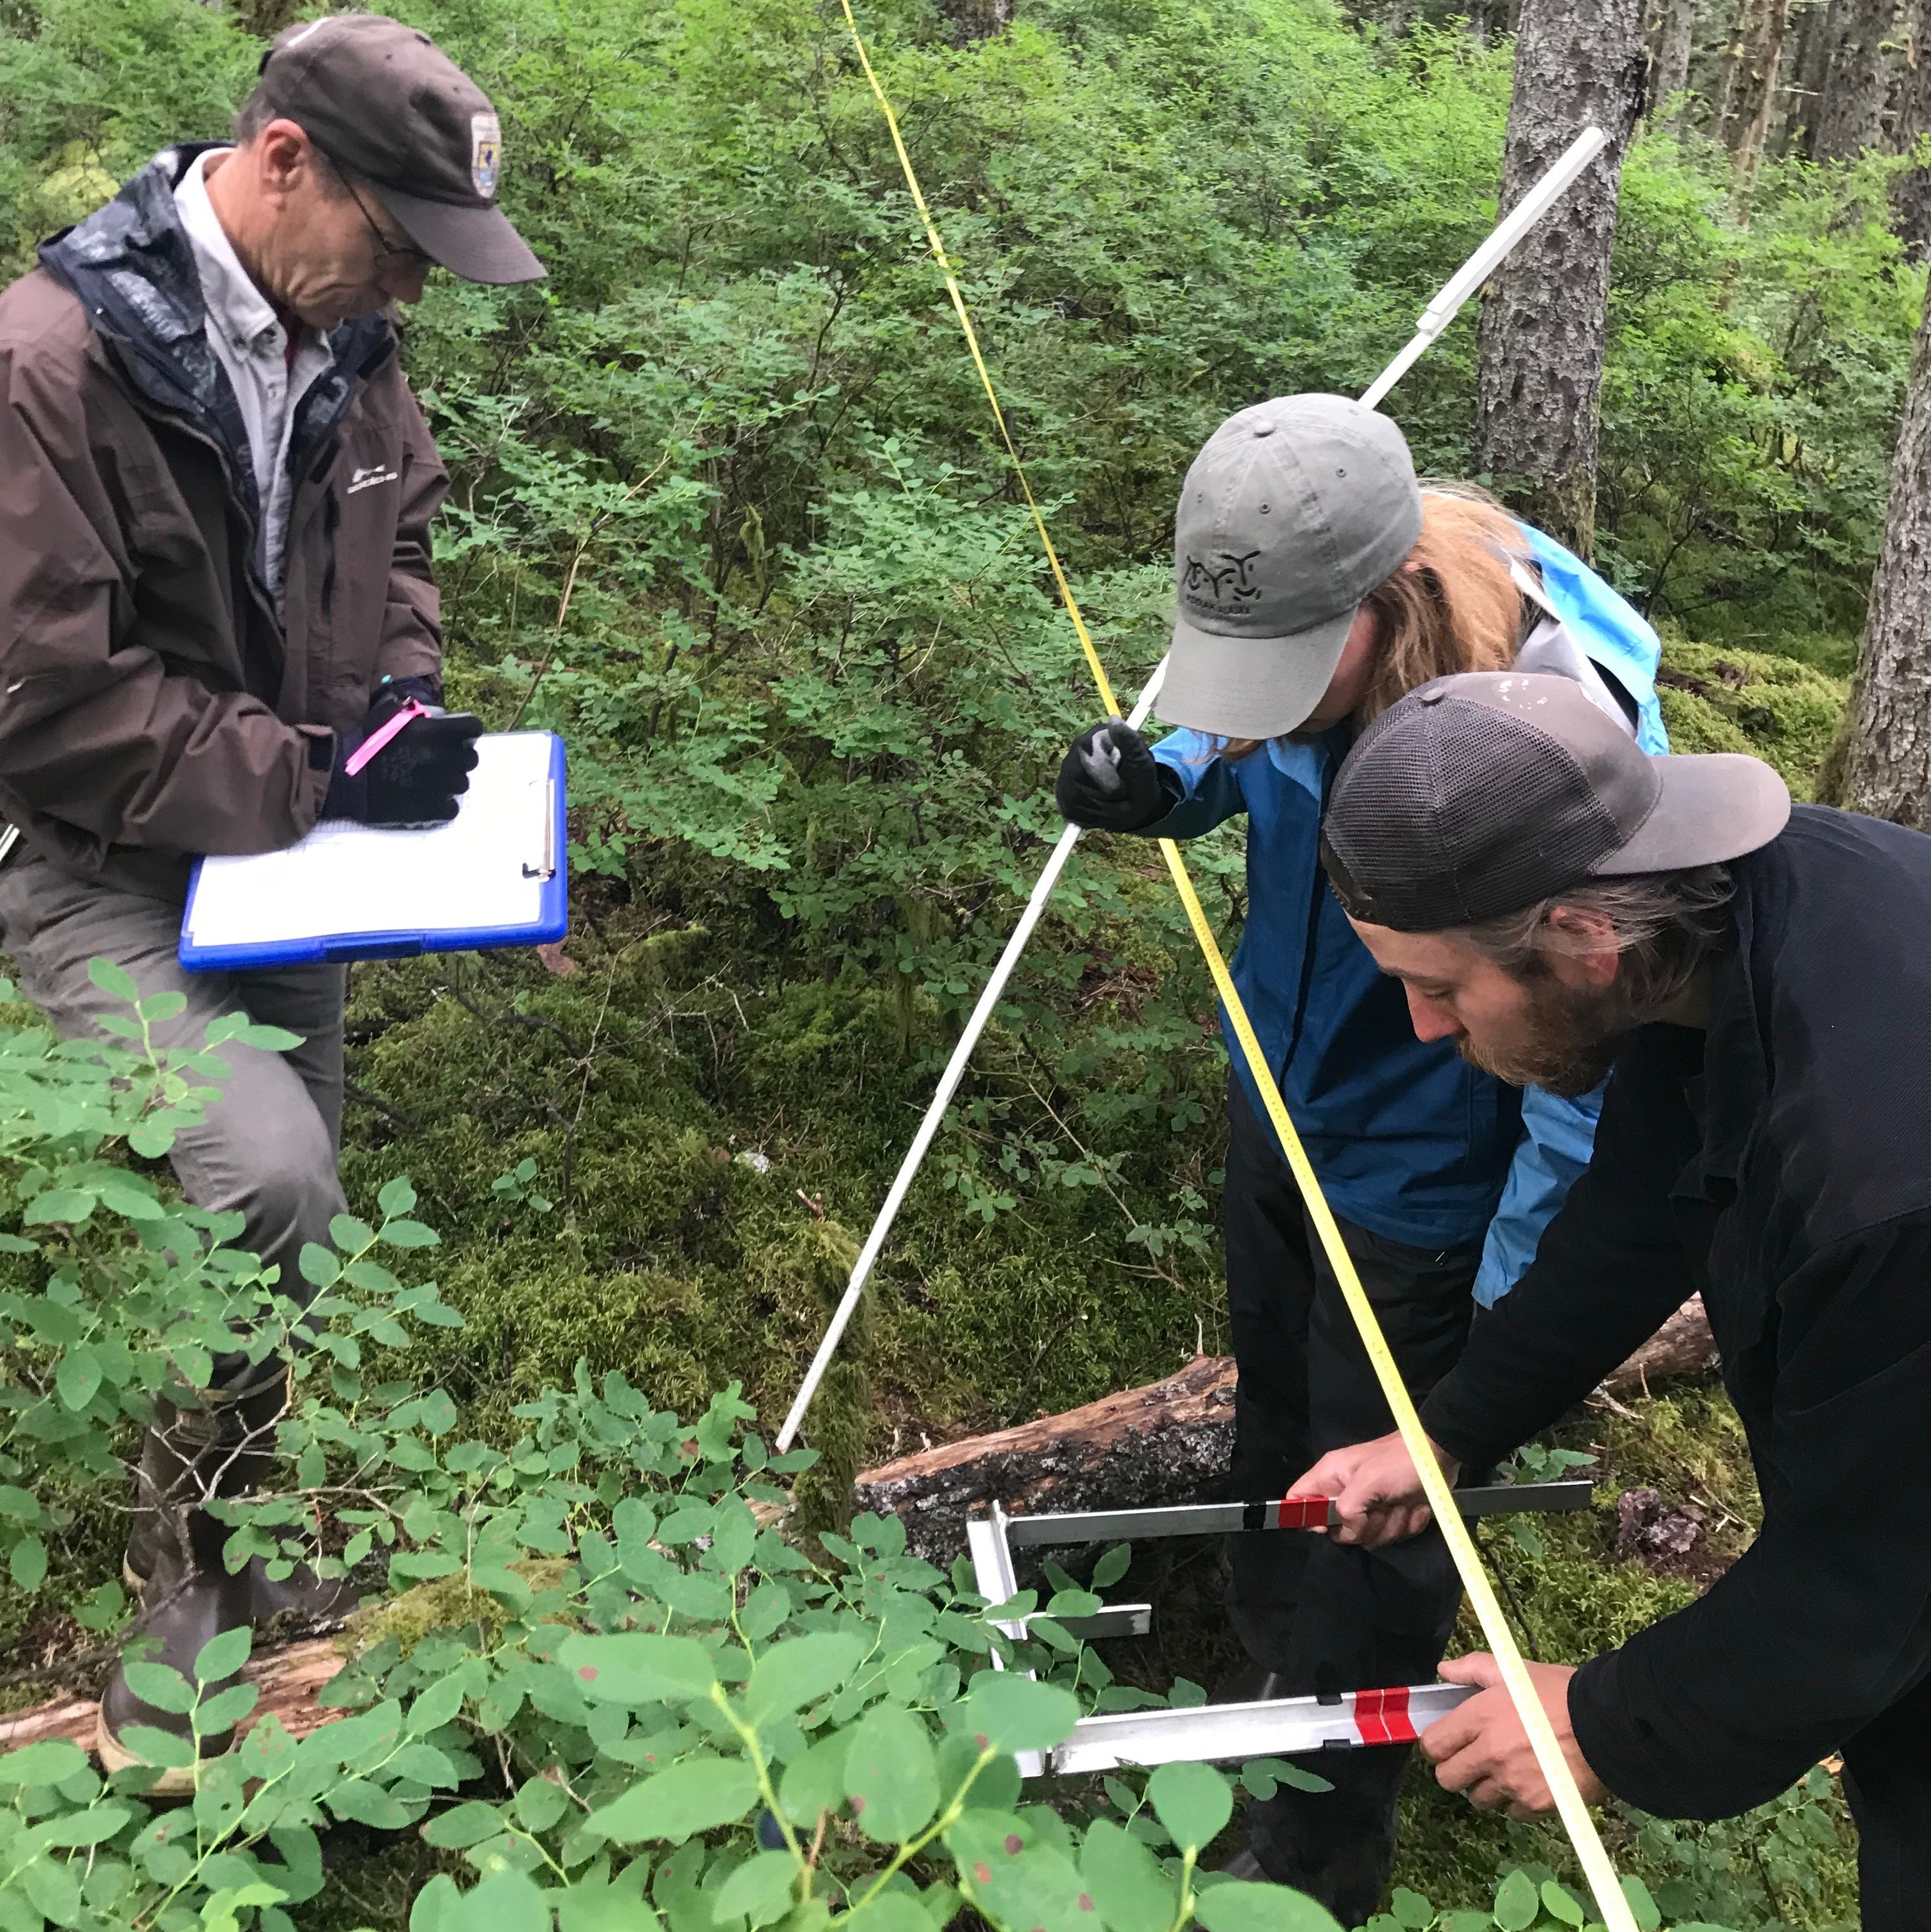 A Kodiak National Wildlife Refuge crew surveys blueberries at Abercrombie State Park in Kodiak. (Photo by Daysha Eaton/KMXT)